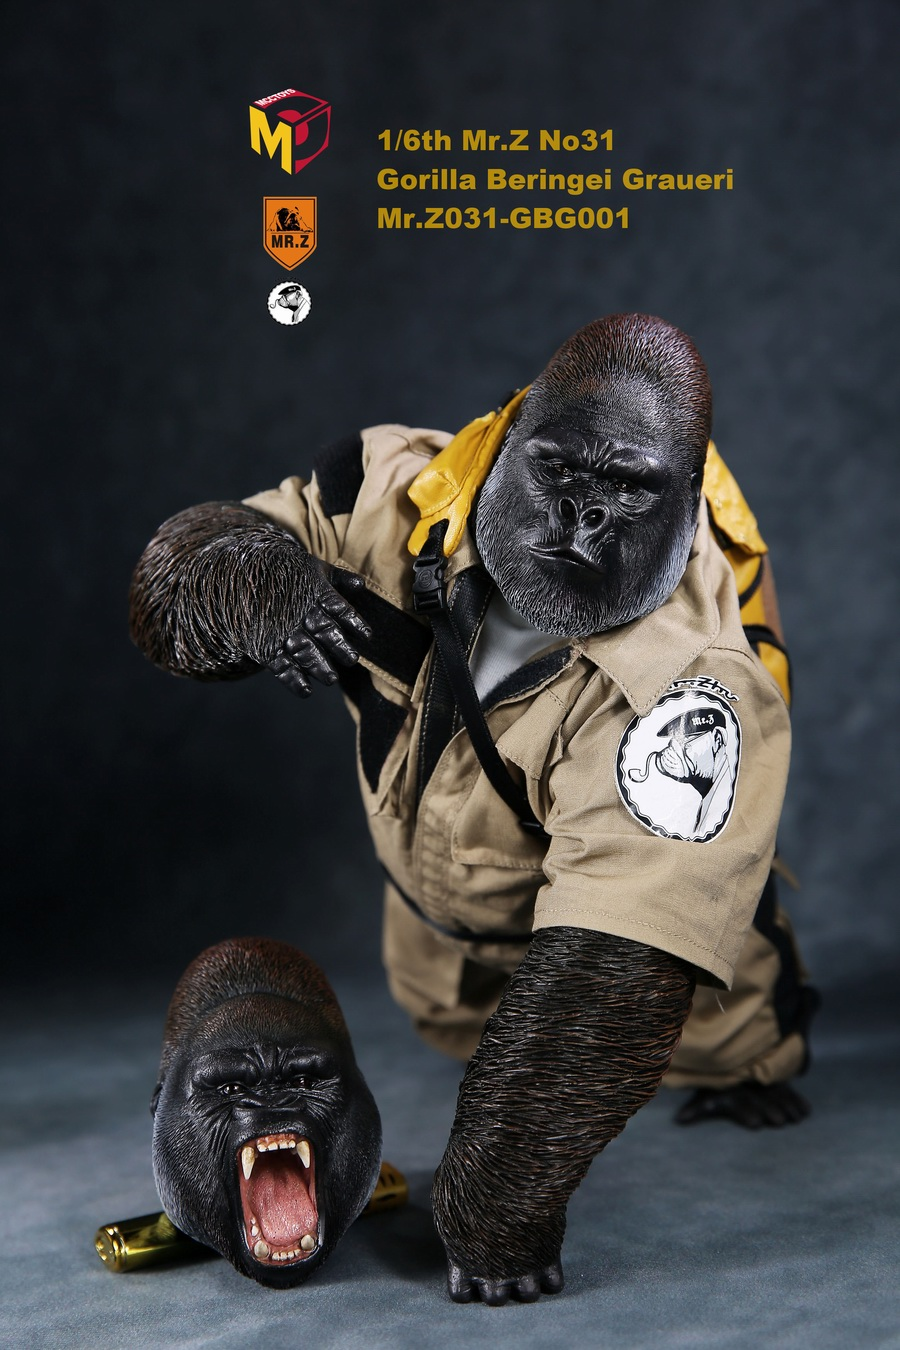 NEW PRODUCT: Mr.Z new product: 1/6 simulation animal model 31st bomb - African lowland gorilla (all 2 heads can be changed to upper limbs) 10103410